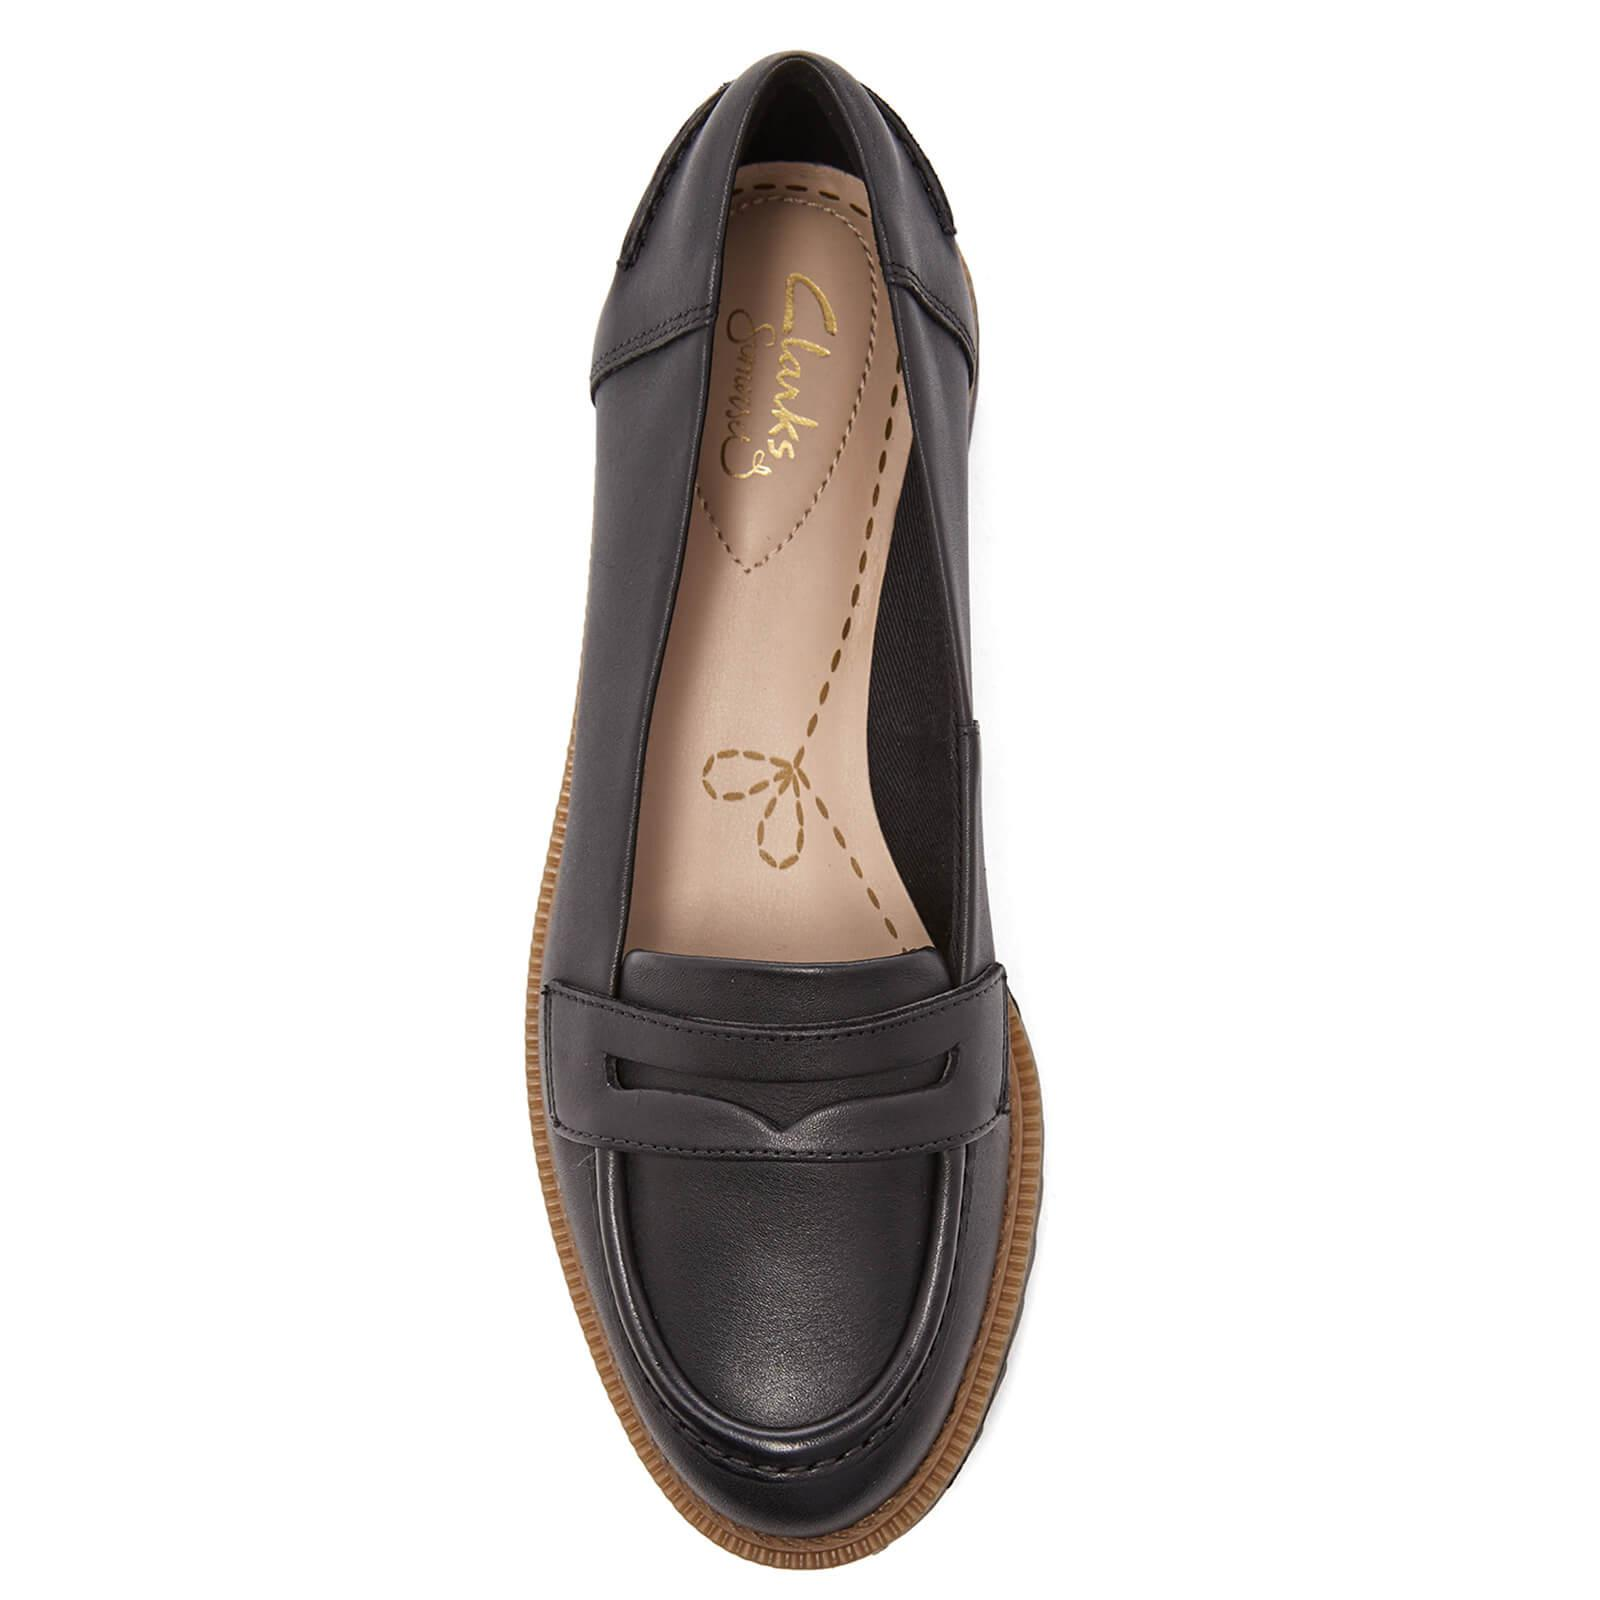 32fb2f93c76 Clarks - Black Women s Griffin Milly Leather Loafers - Lyst. View fullscreen